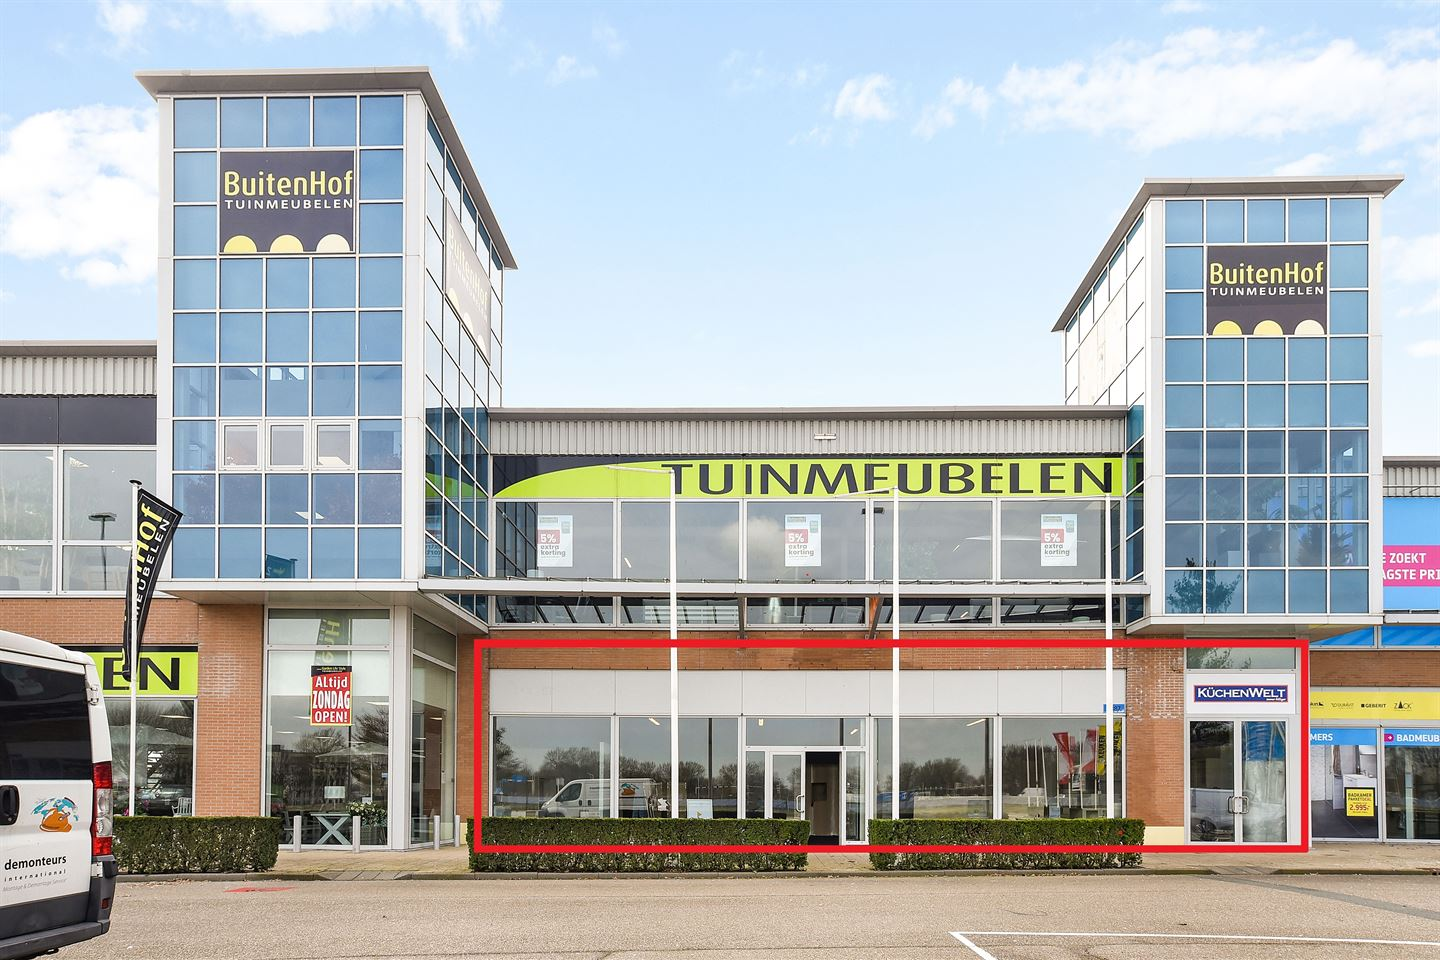 Tuinmeubelen Outlet Breda Retail Outlet Breda Search Retail Outlets For Rent Grenssteen